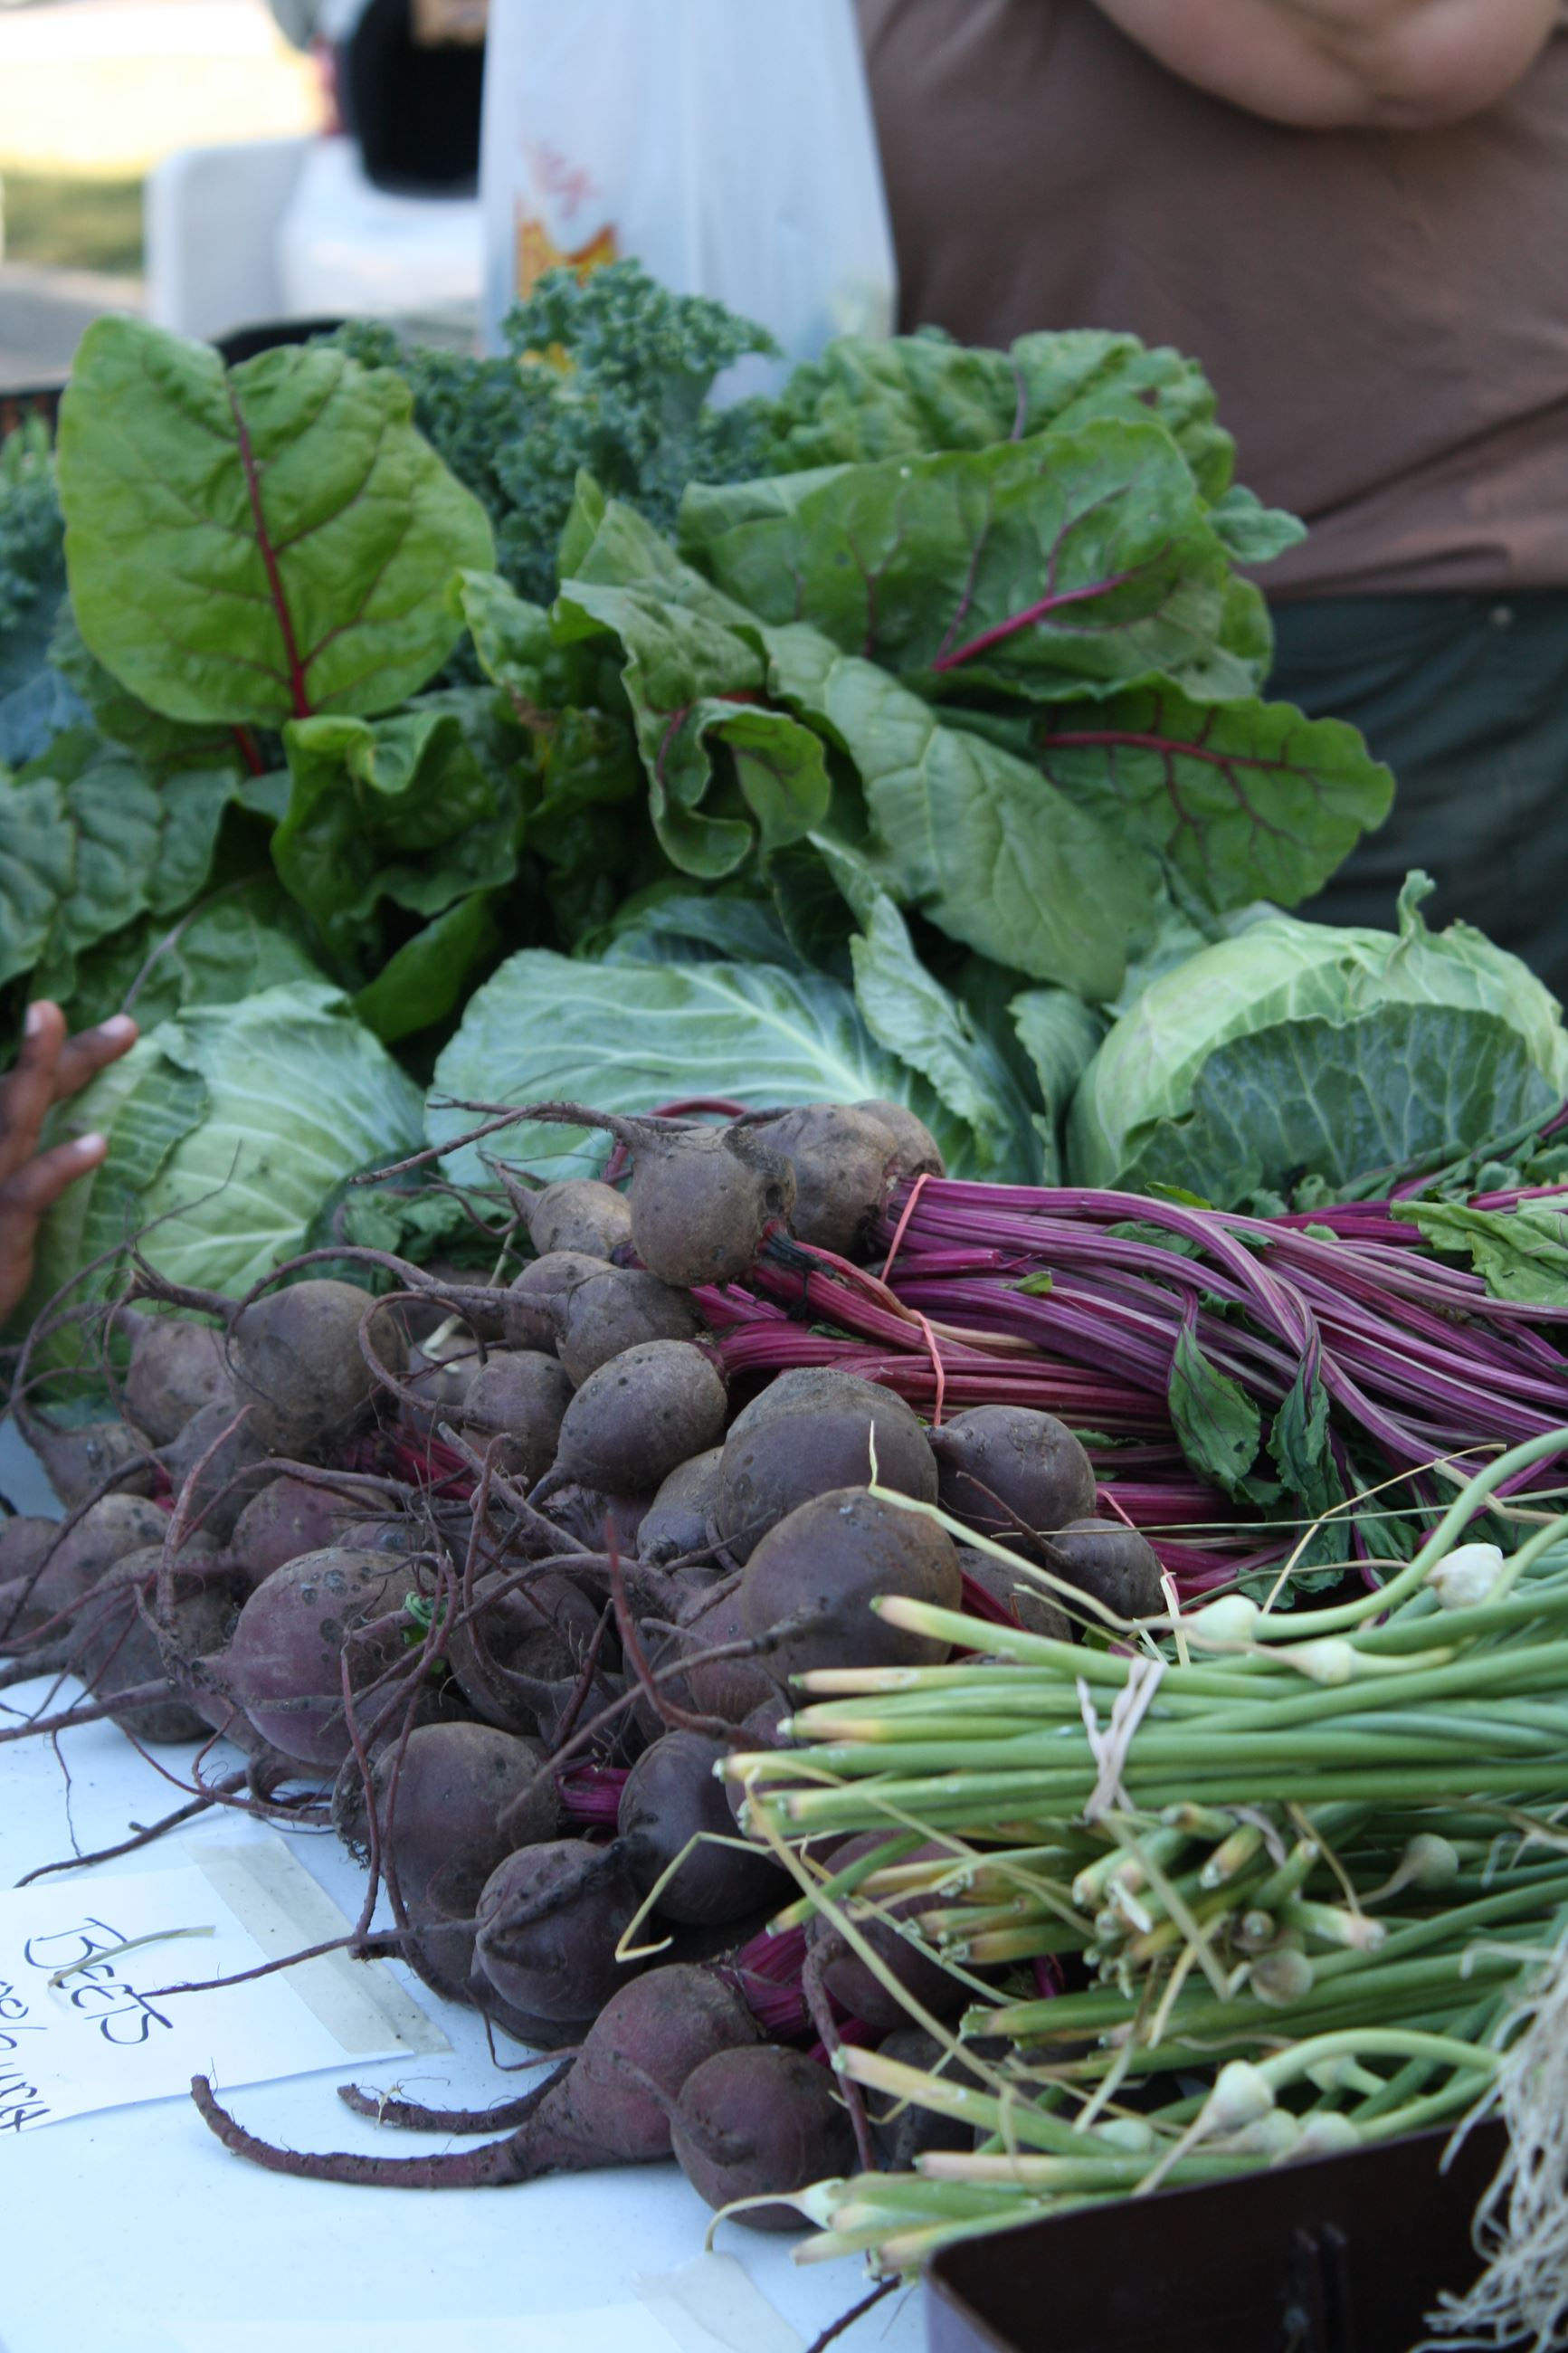 Farmers' Market produce